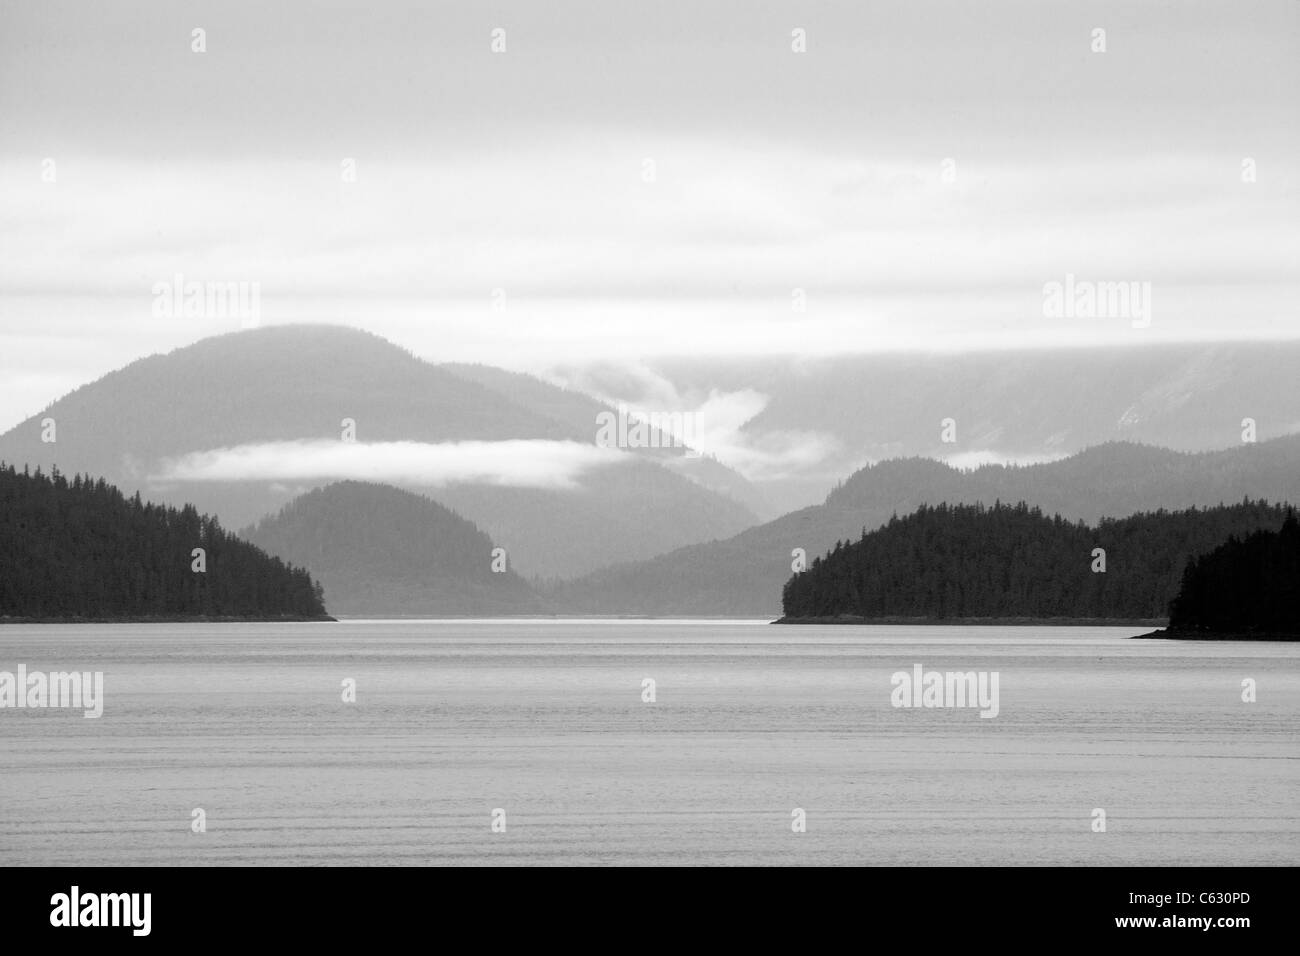 Black and White of Alaskan Inside Passage Scenery - Stock Image